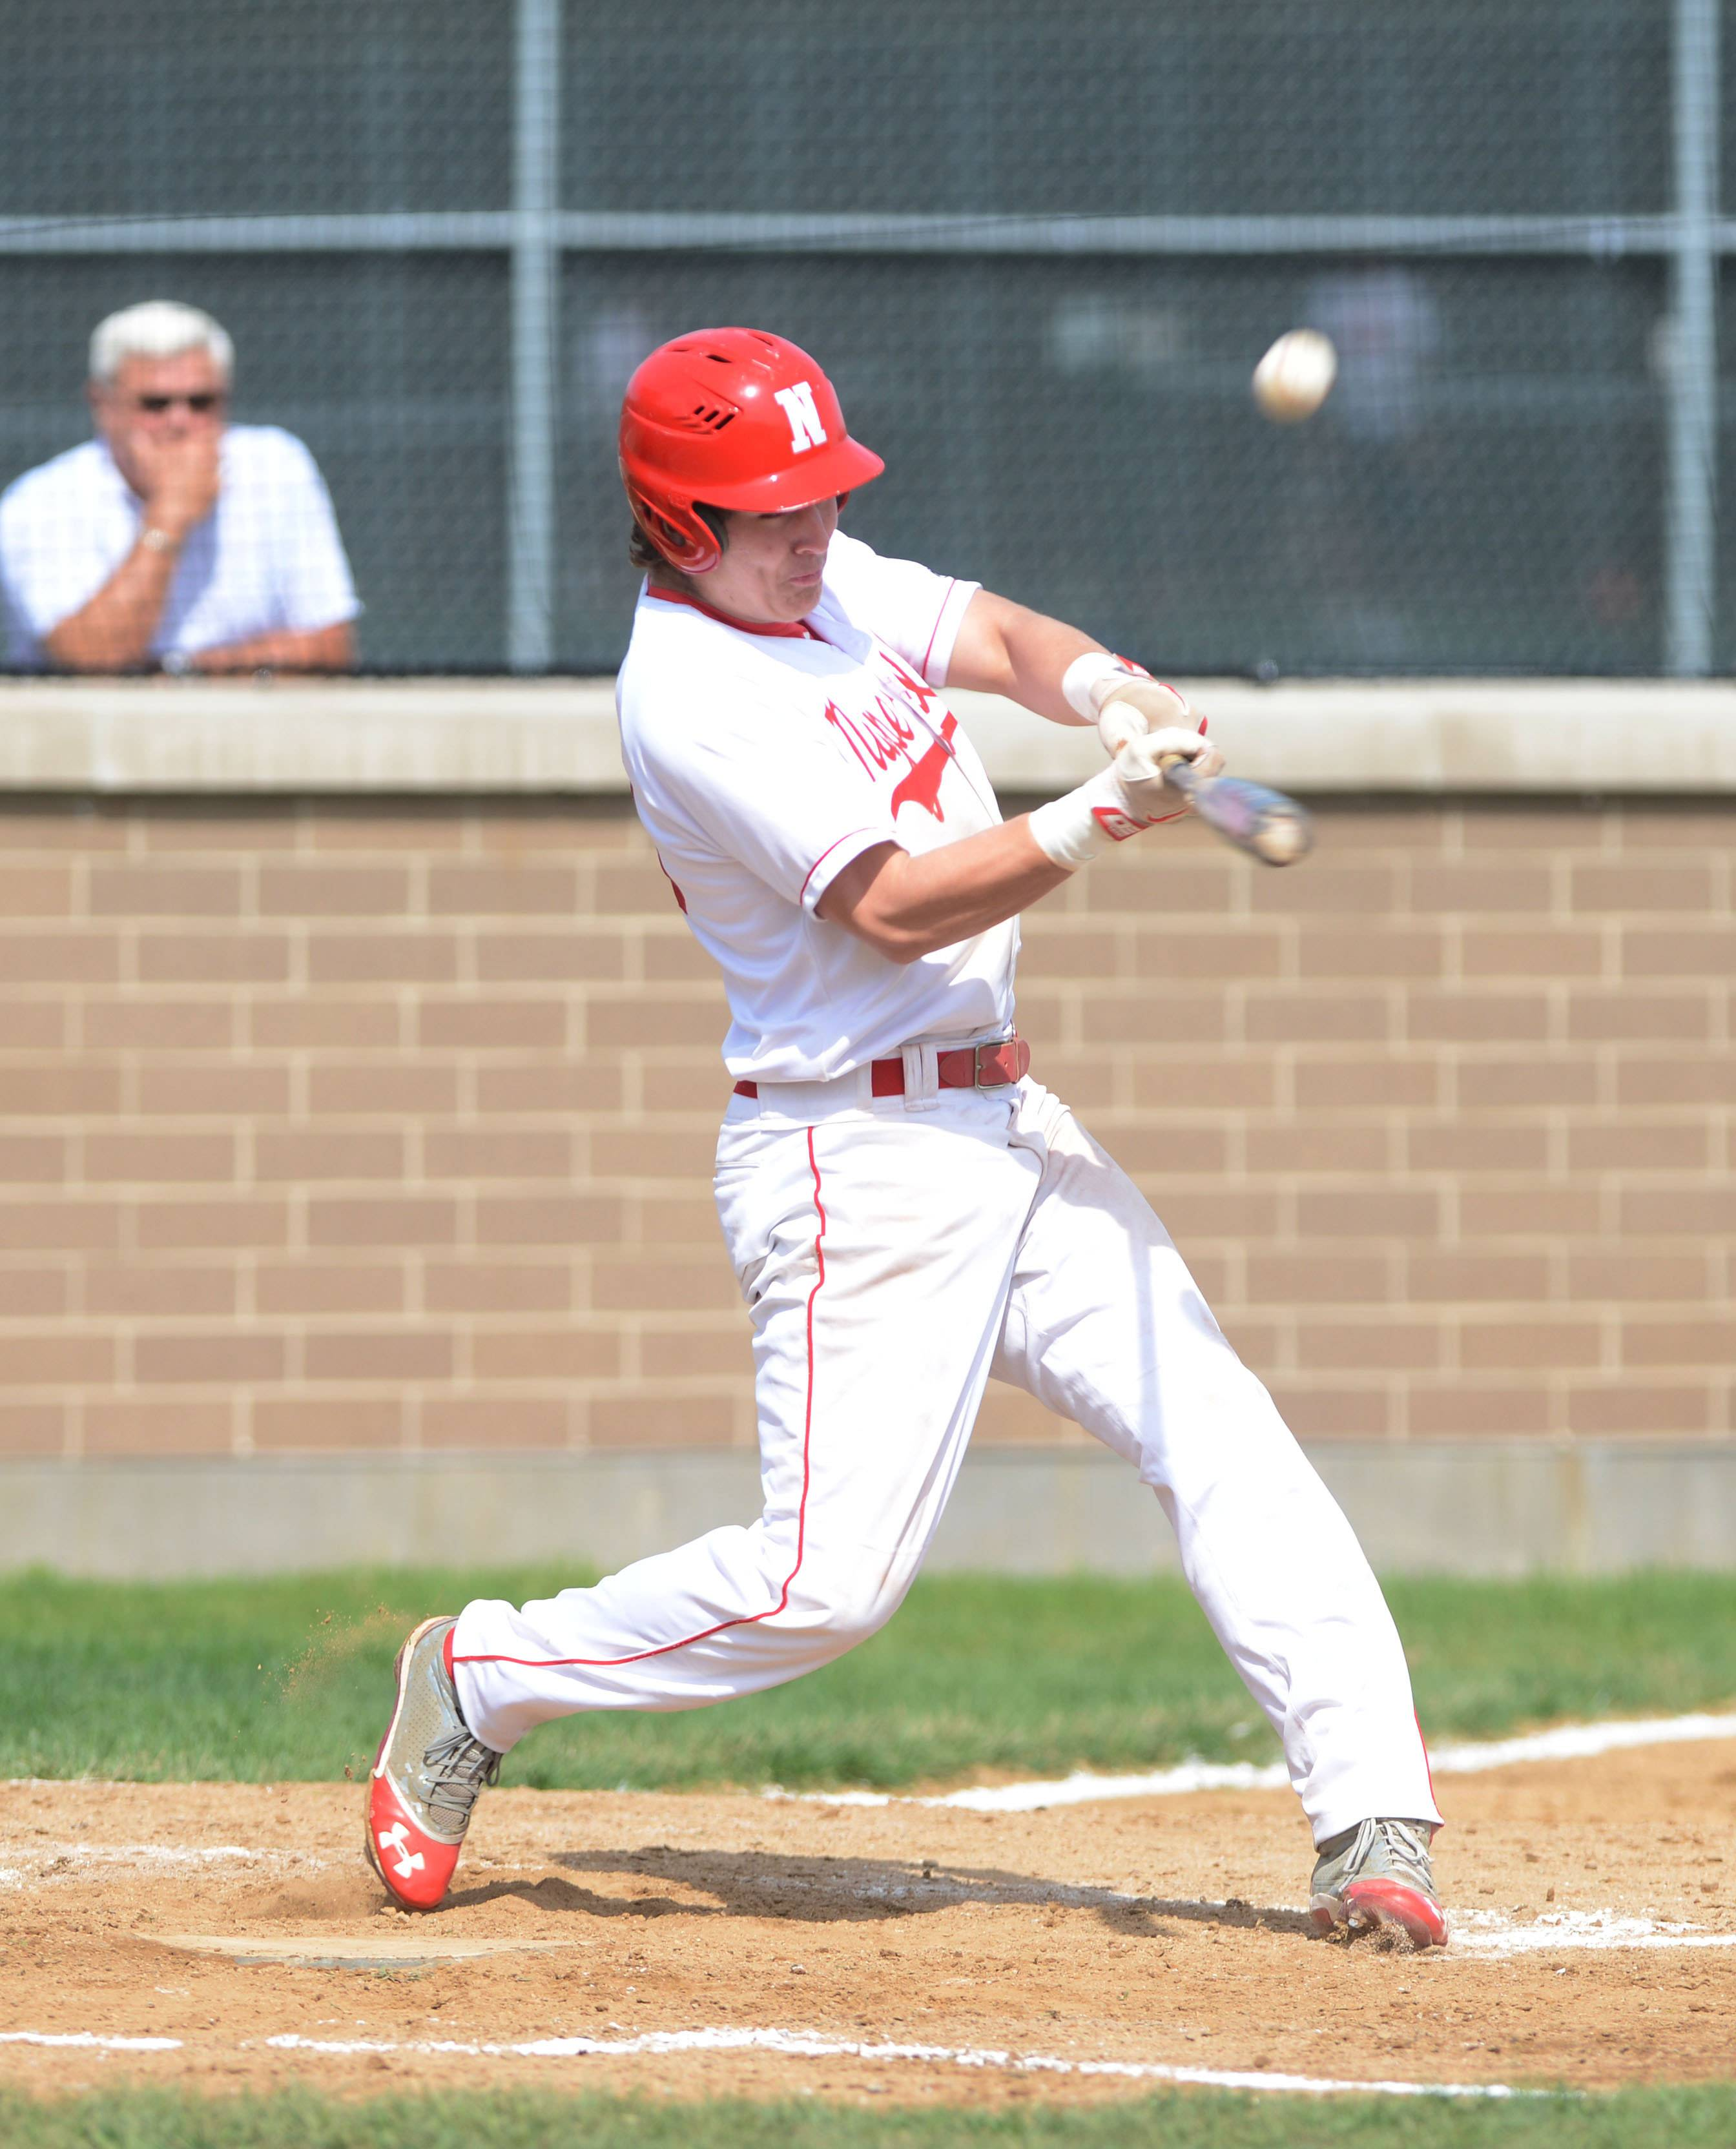 #33 Bob McMillen of Naperville Central takes a cut during the Glenbard North at Naperville Central baseball game Saturday.